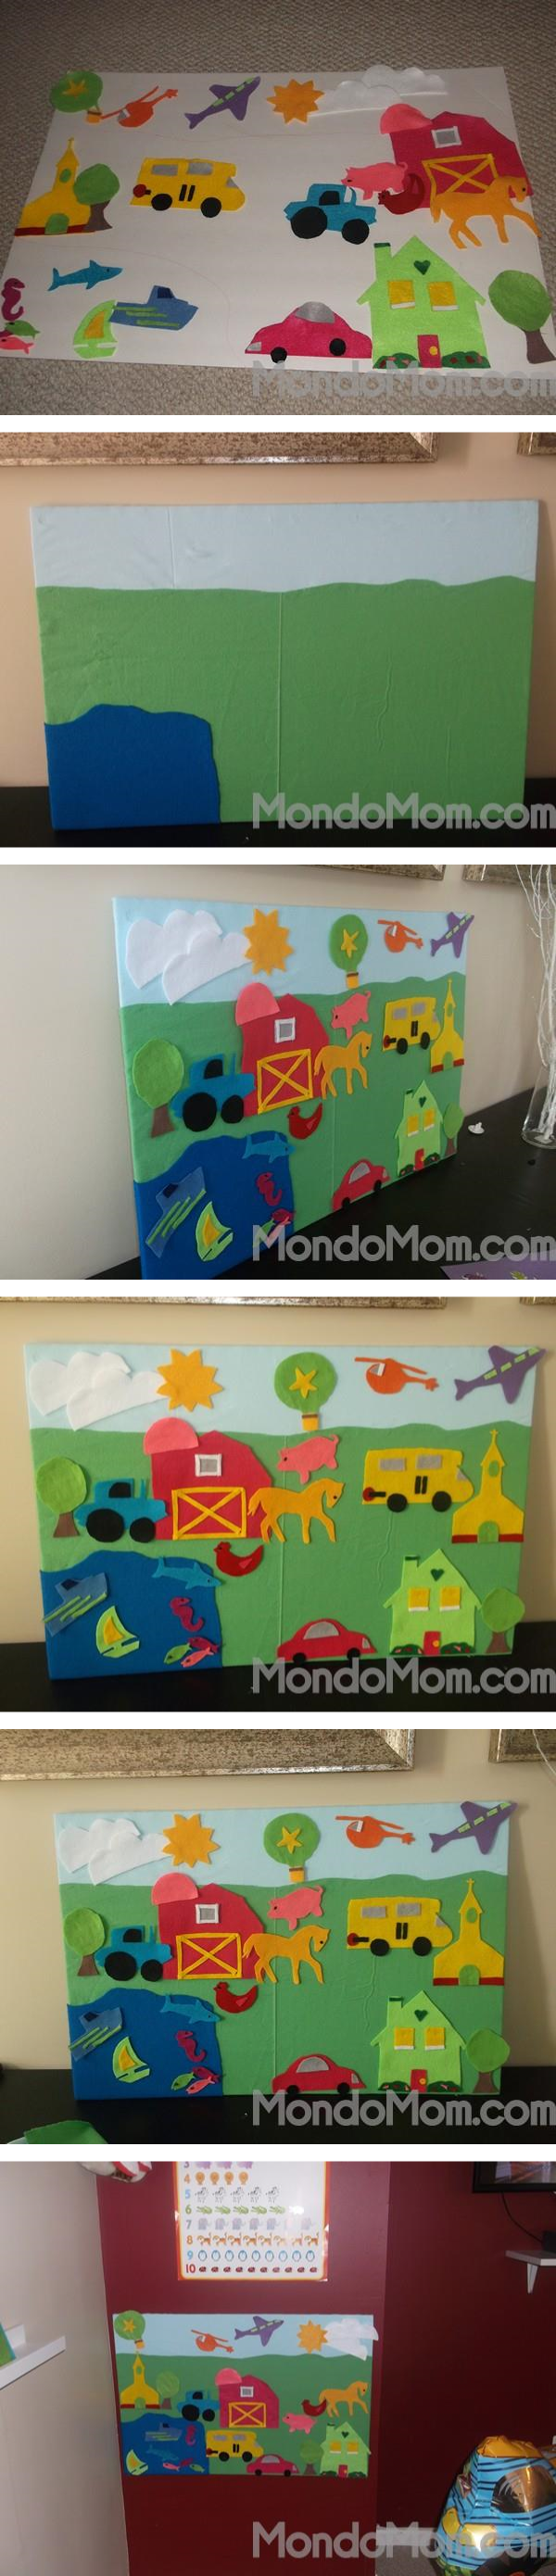 DIY felt board for kids tutorial steps